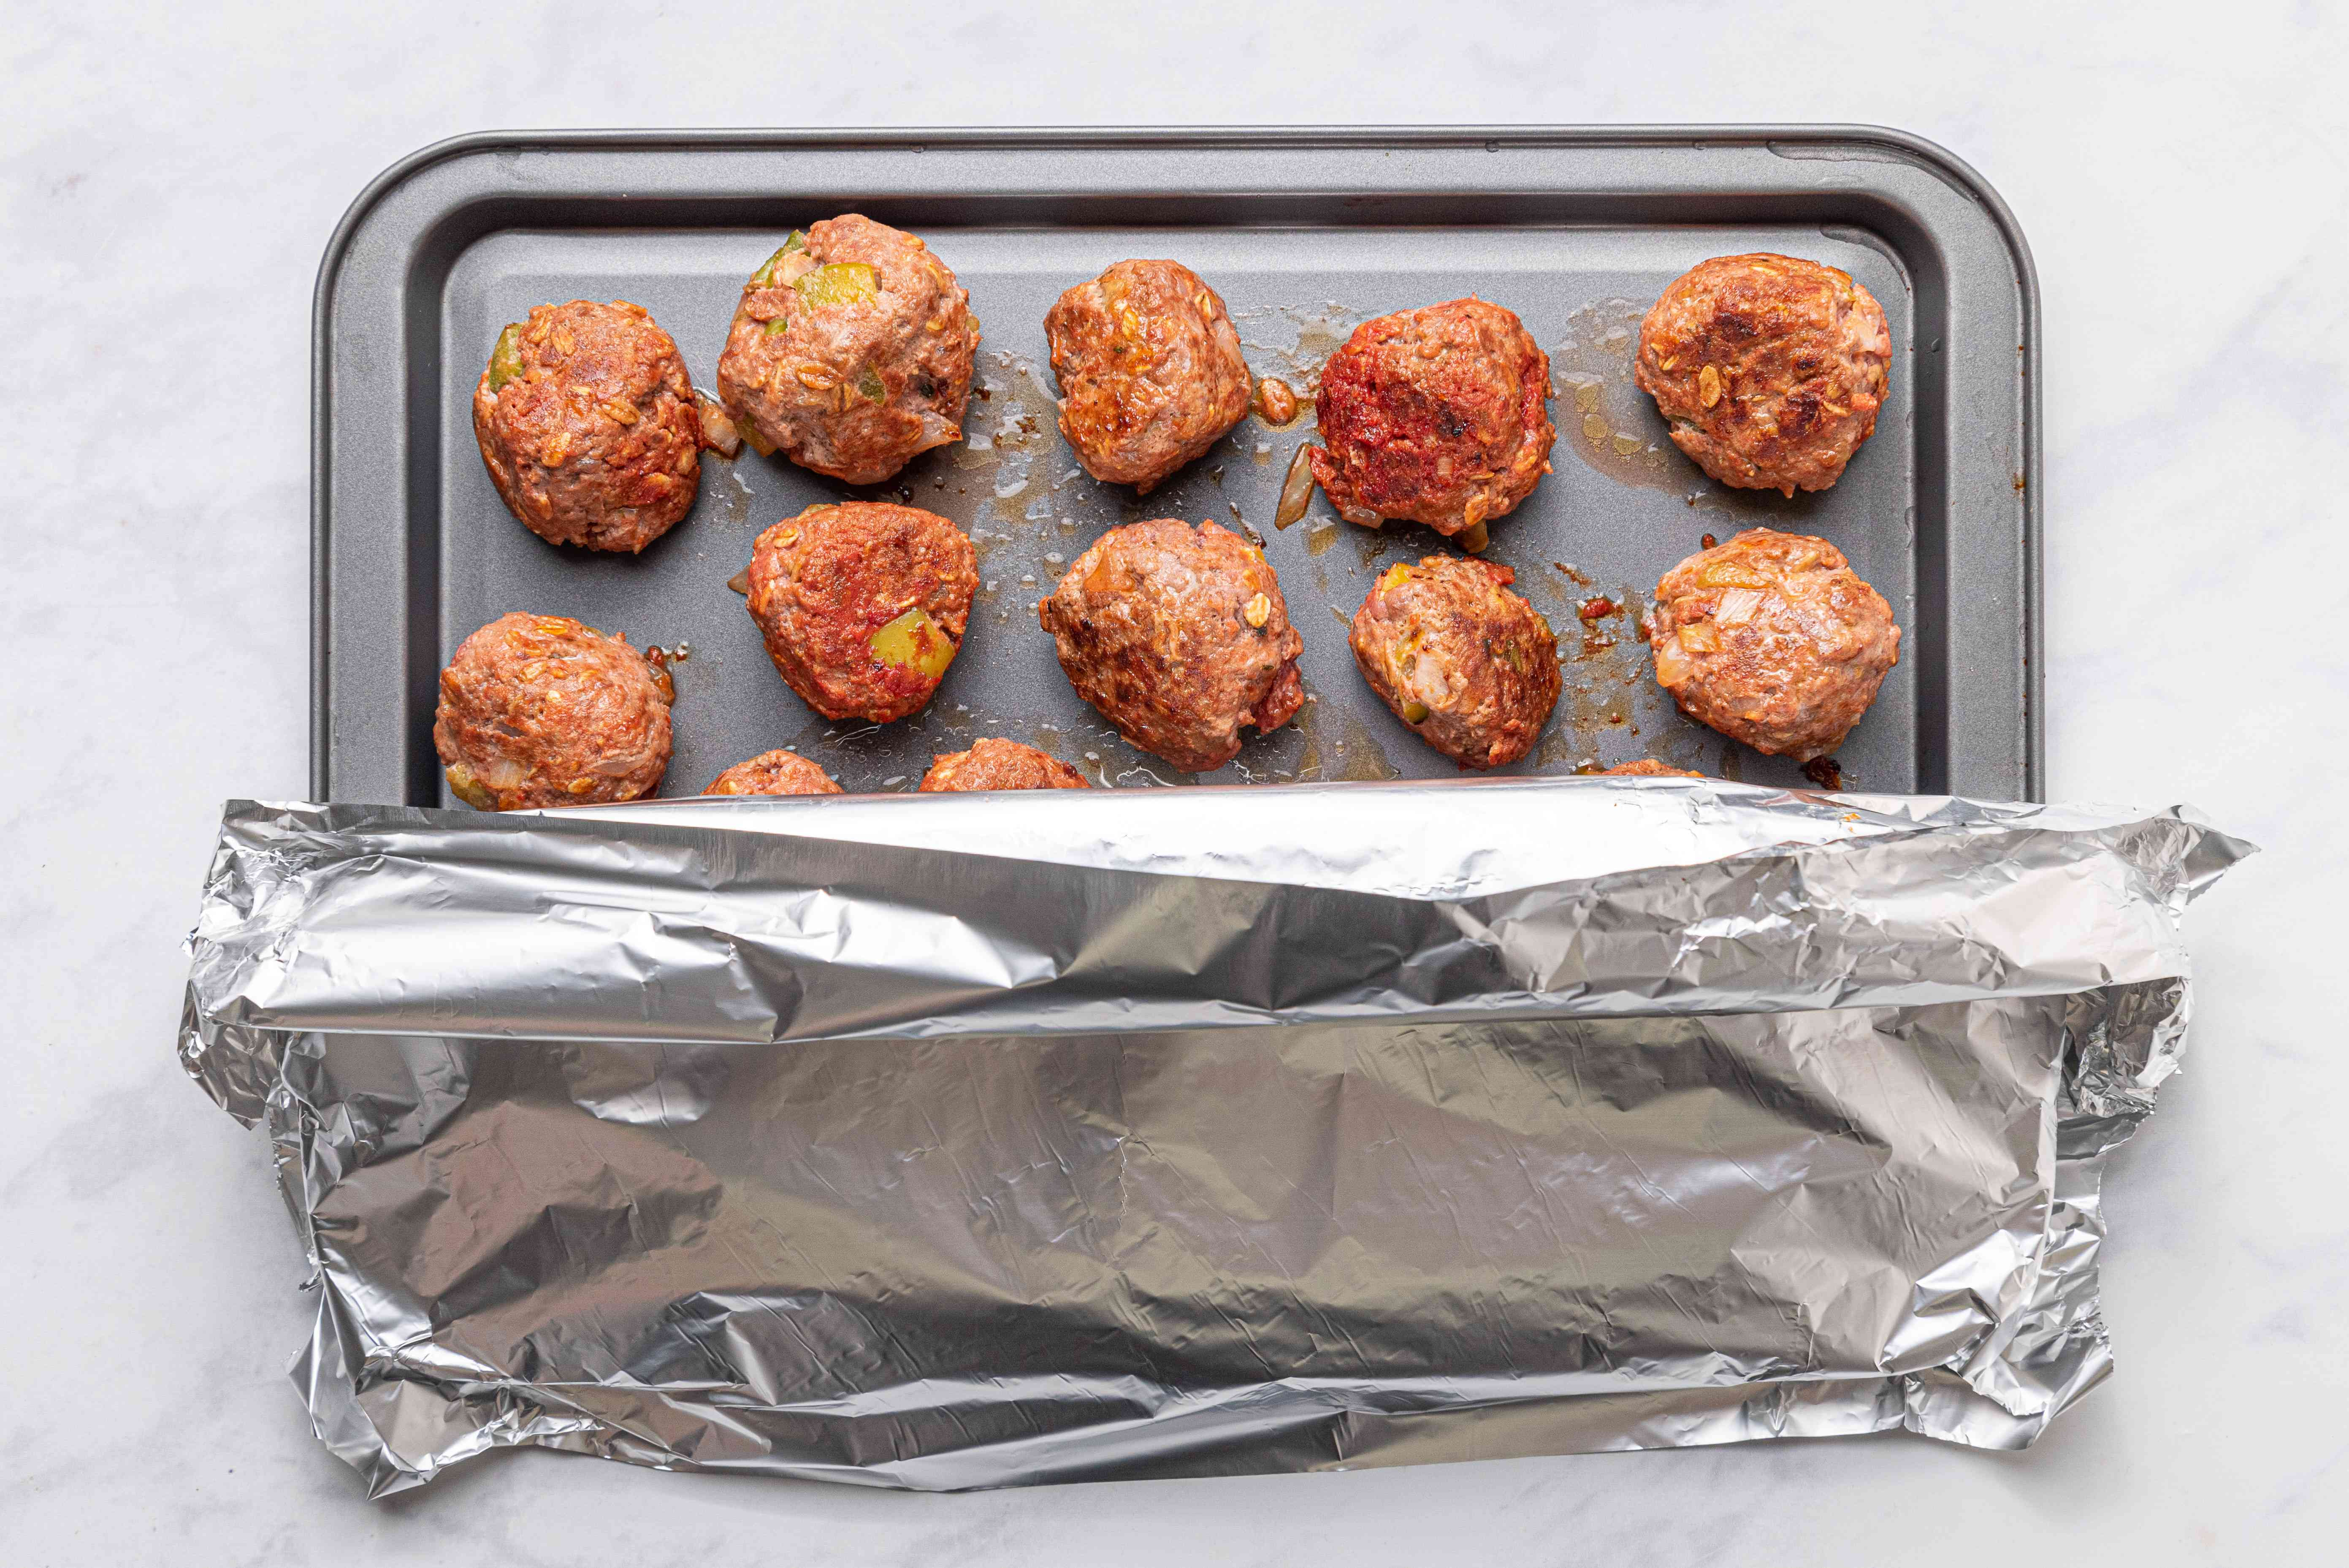 meatballs on a baking sheet, covered with aluminum foil